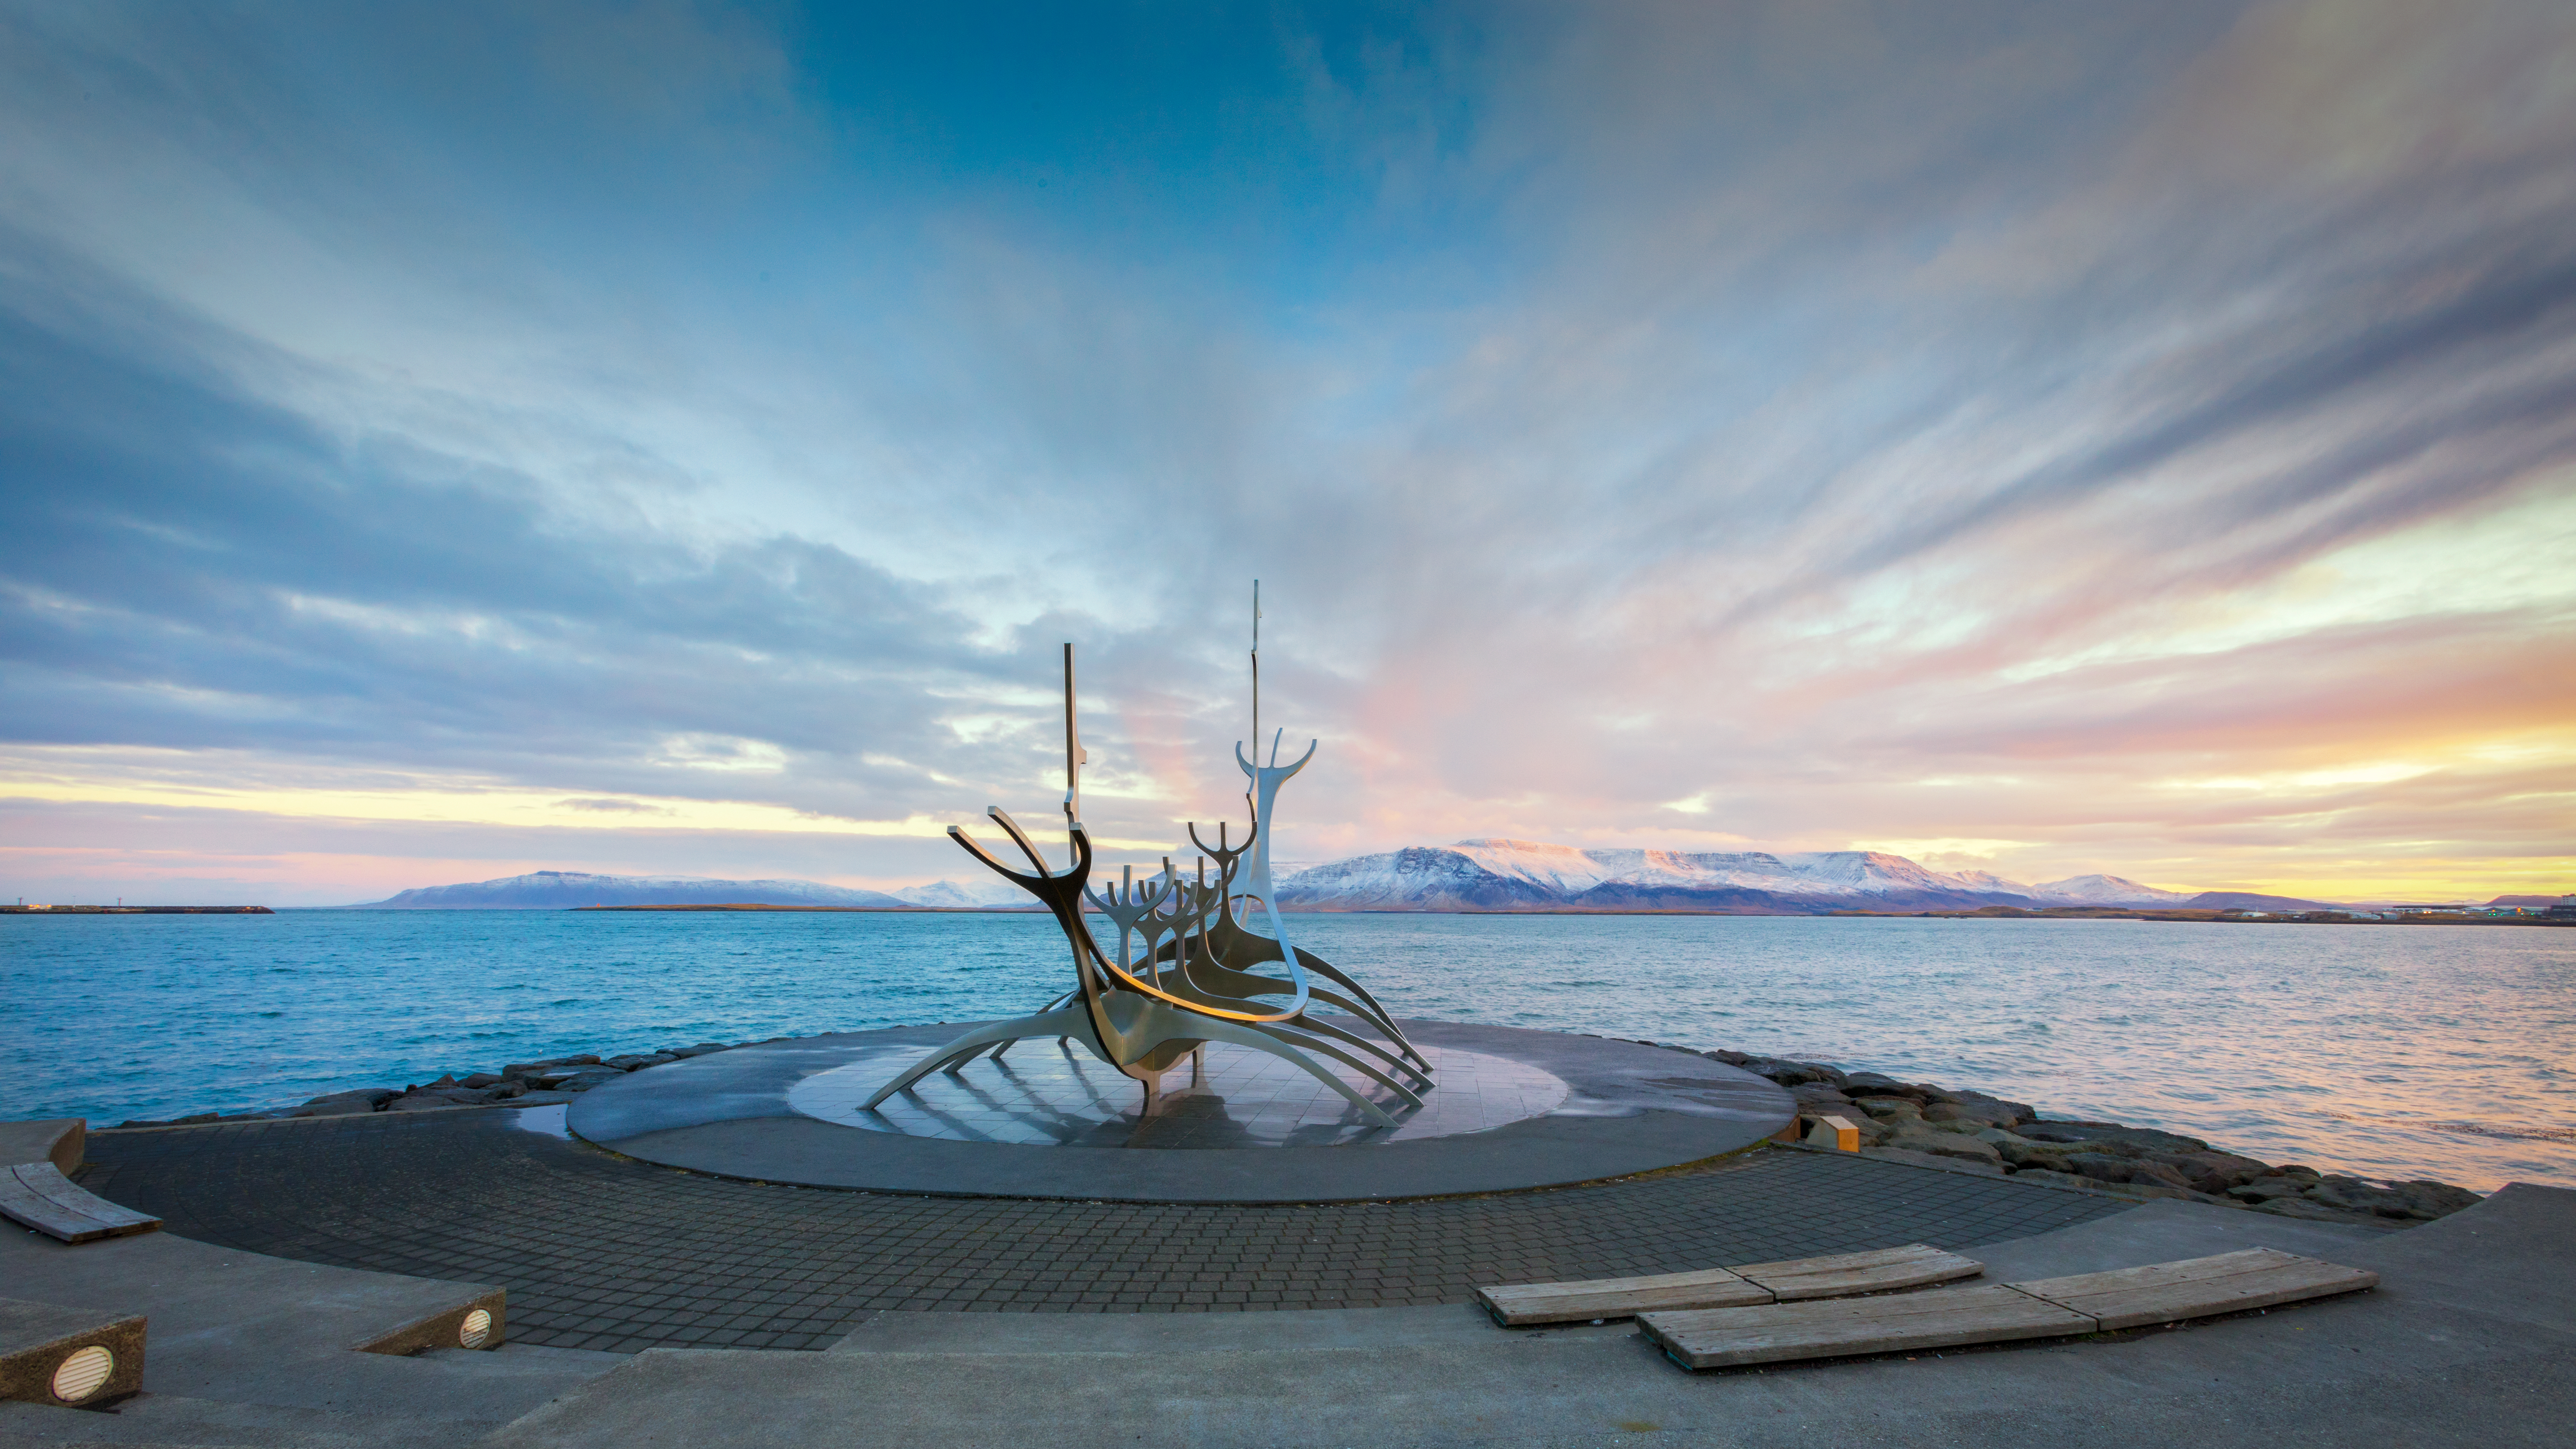 Sun Voyager, or Solfar, is a sculpture by Jon Gunnar Arnason, located in Reykjavík, Iceland. Sun Voyager is described as a dreamboat, or an ode to the sun.